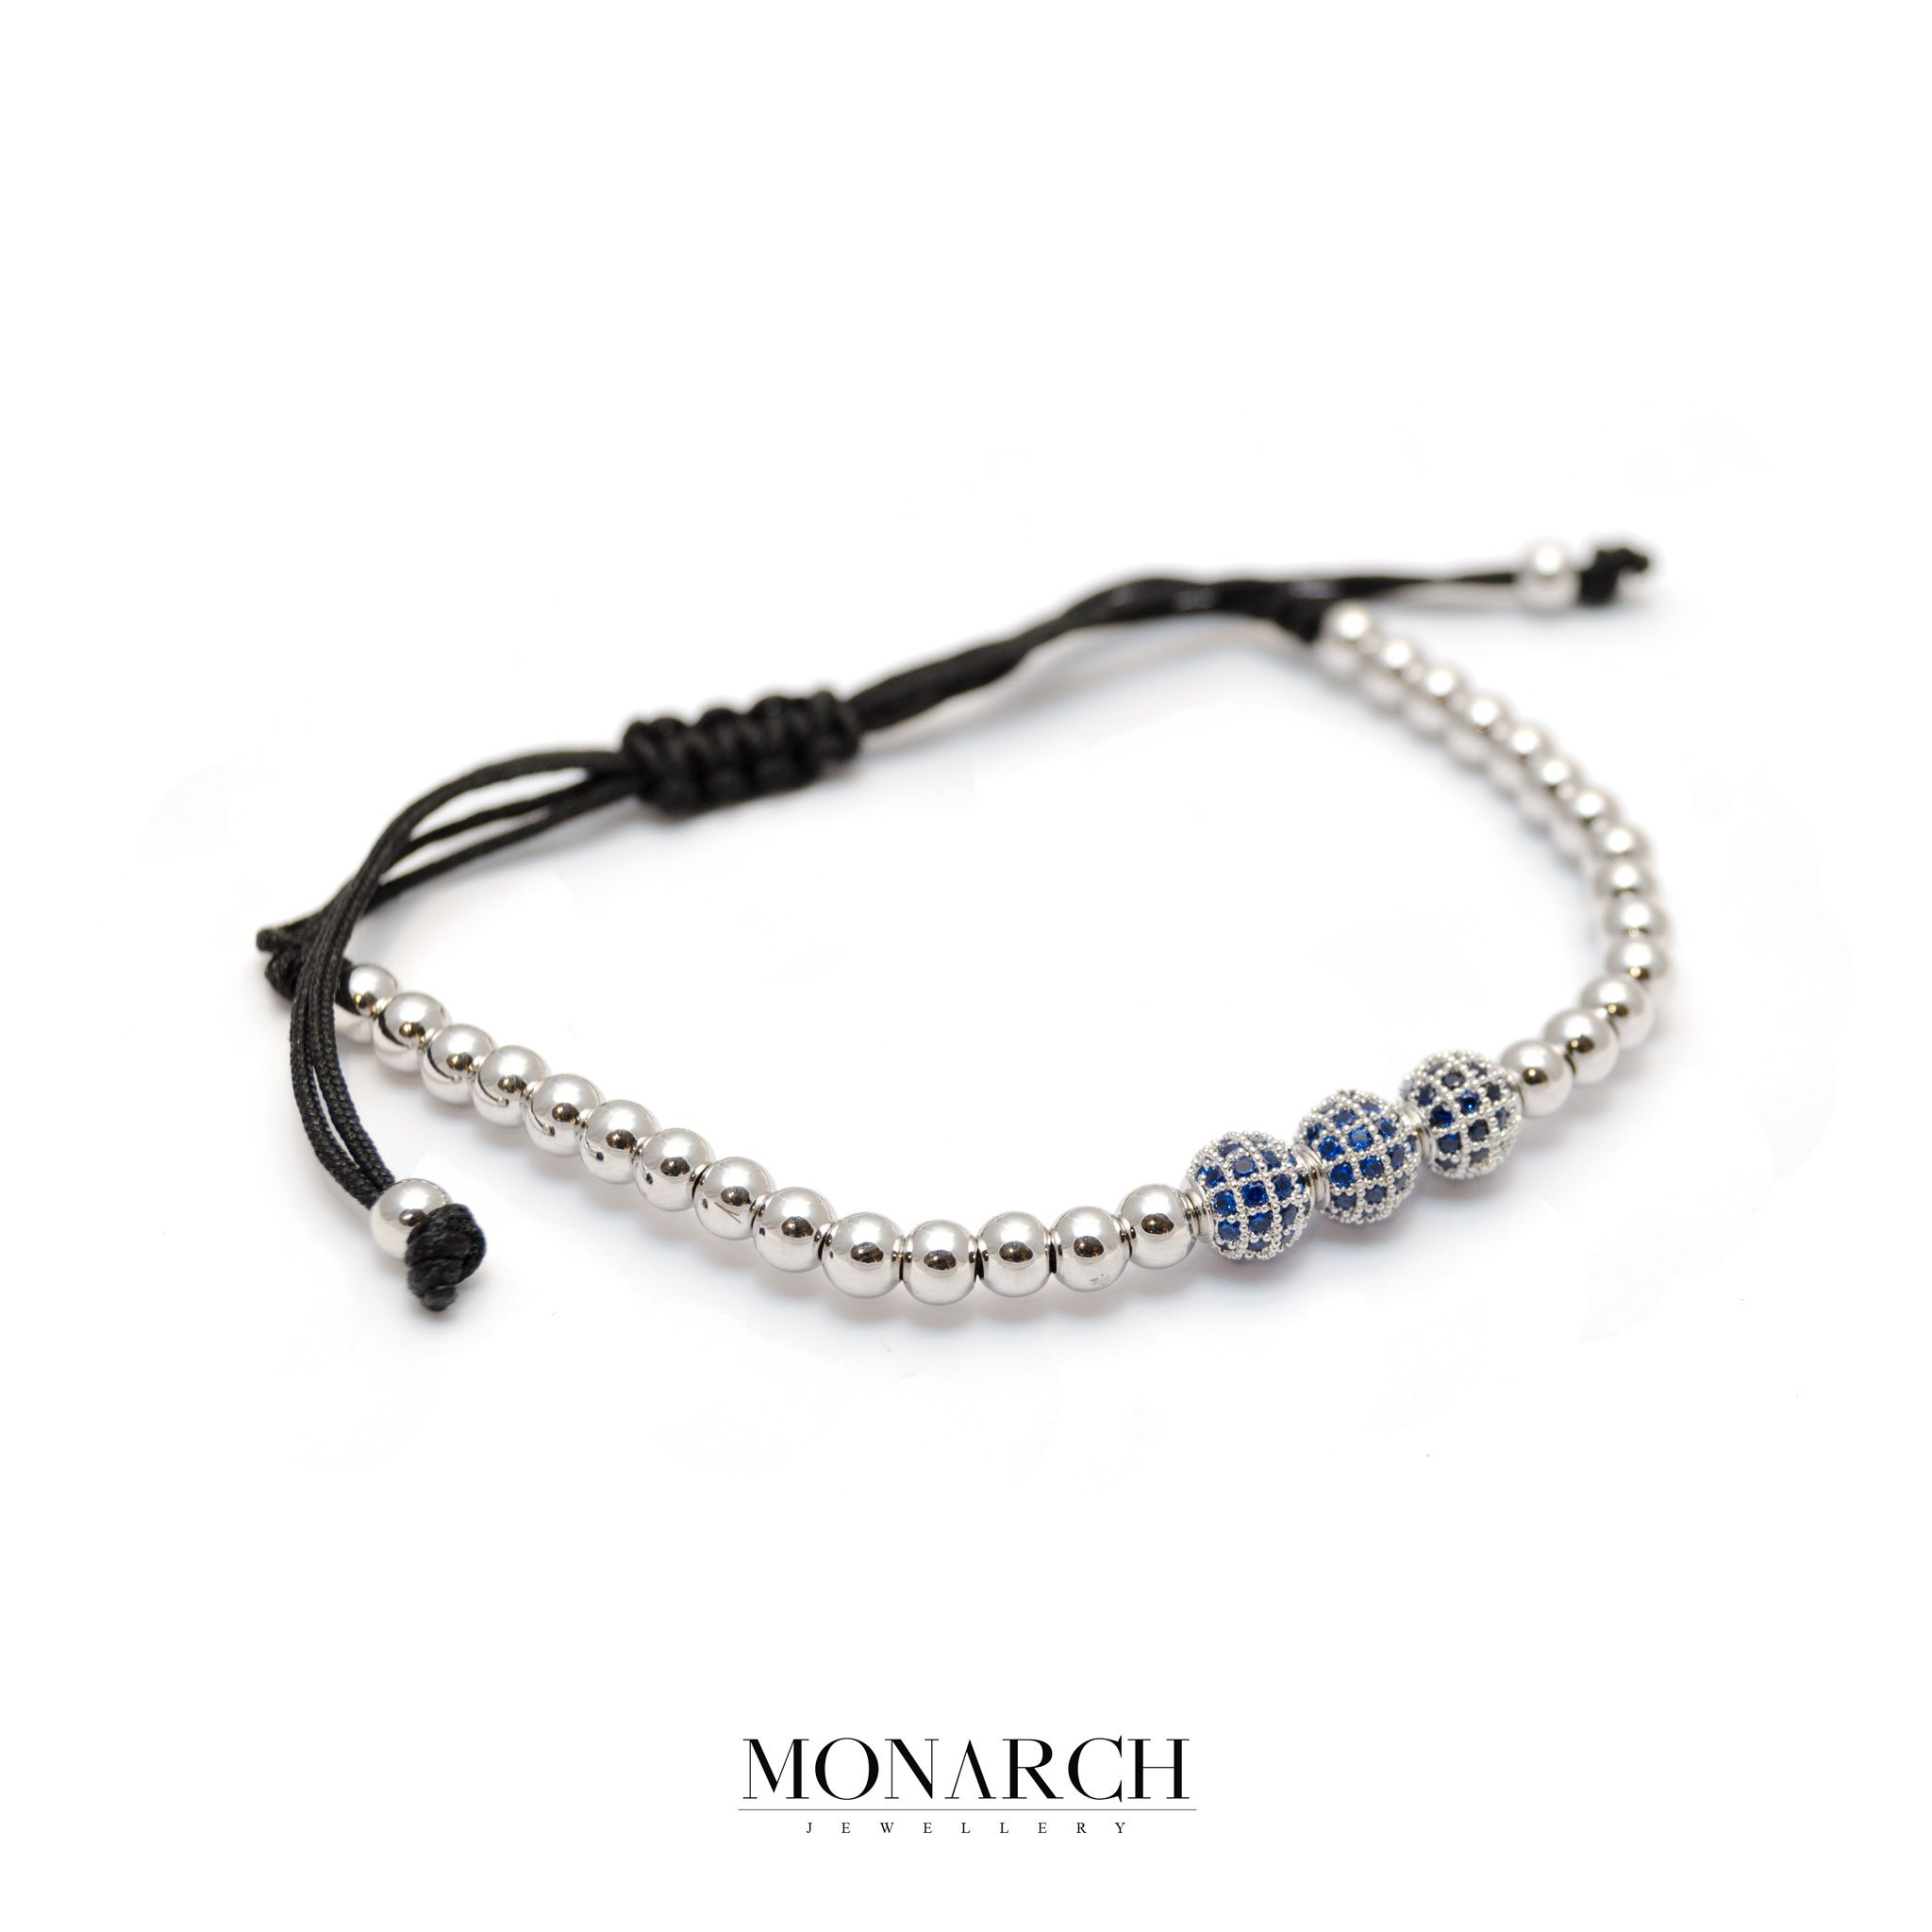 78-Monarch-Jewellery-Silver-Azur-Trio-Bead-Macrame-Bracelet-resized